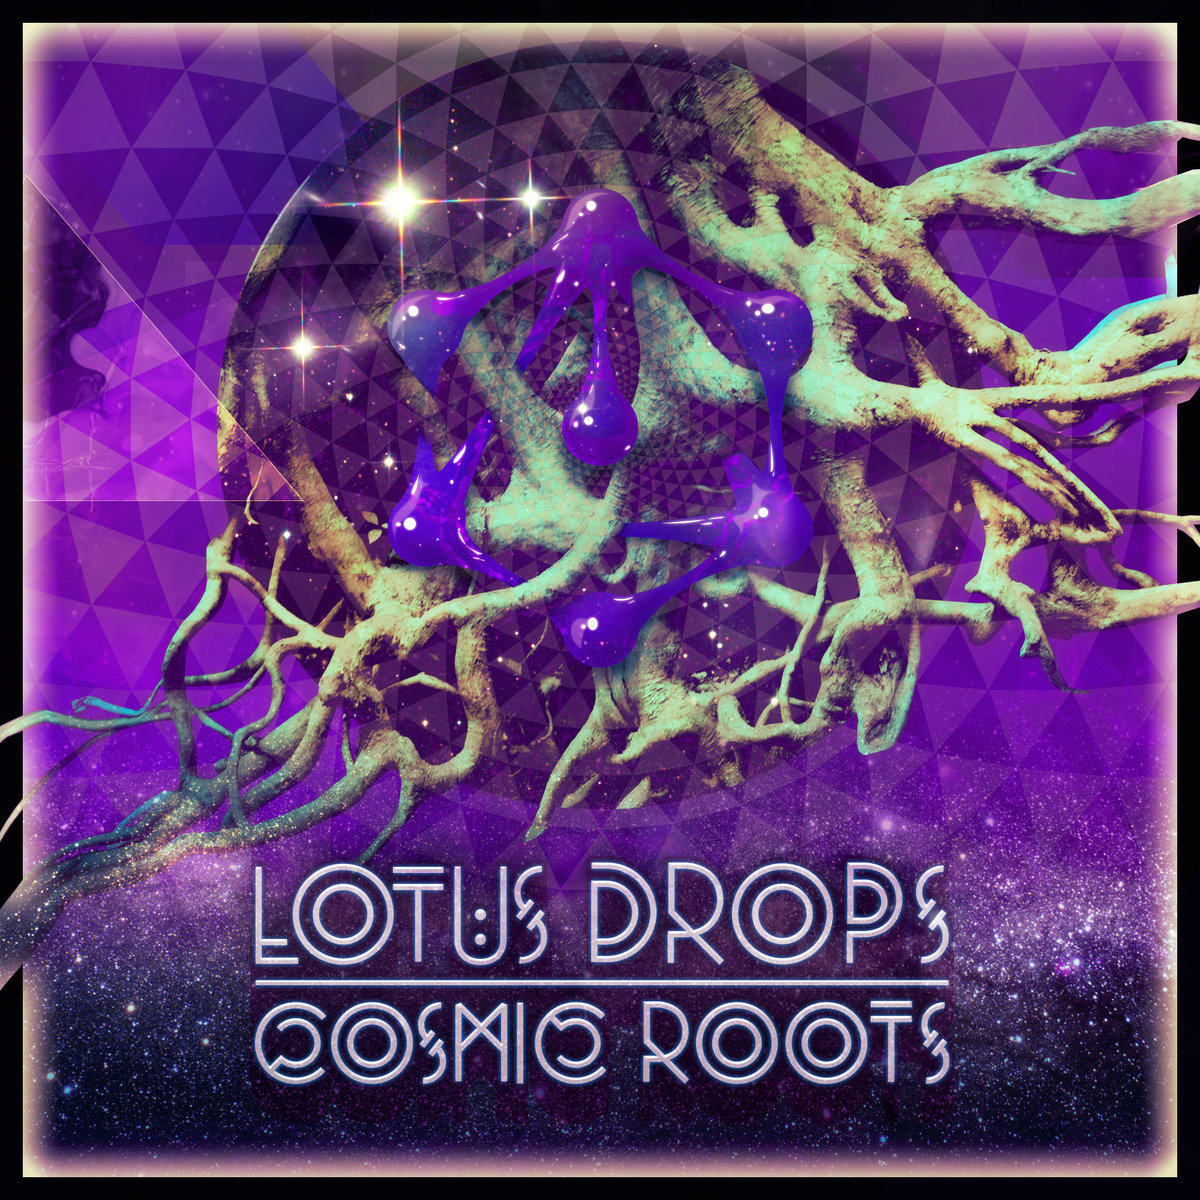 Lotus Drops - You Are The Stars @ 'Cosmic Roots' album (electronic, dubstep)